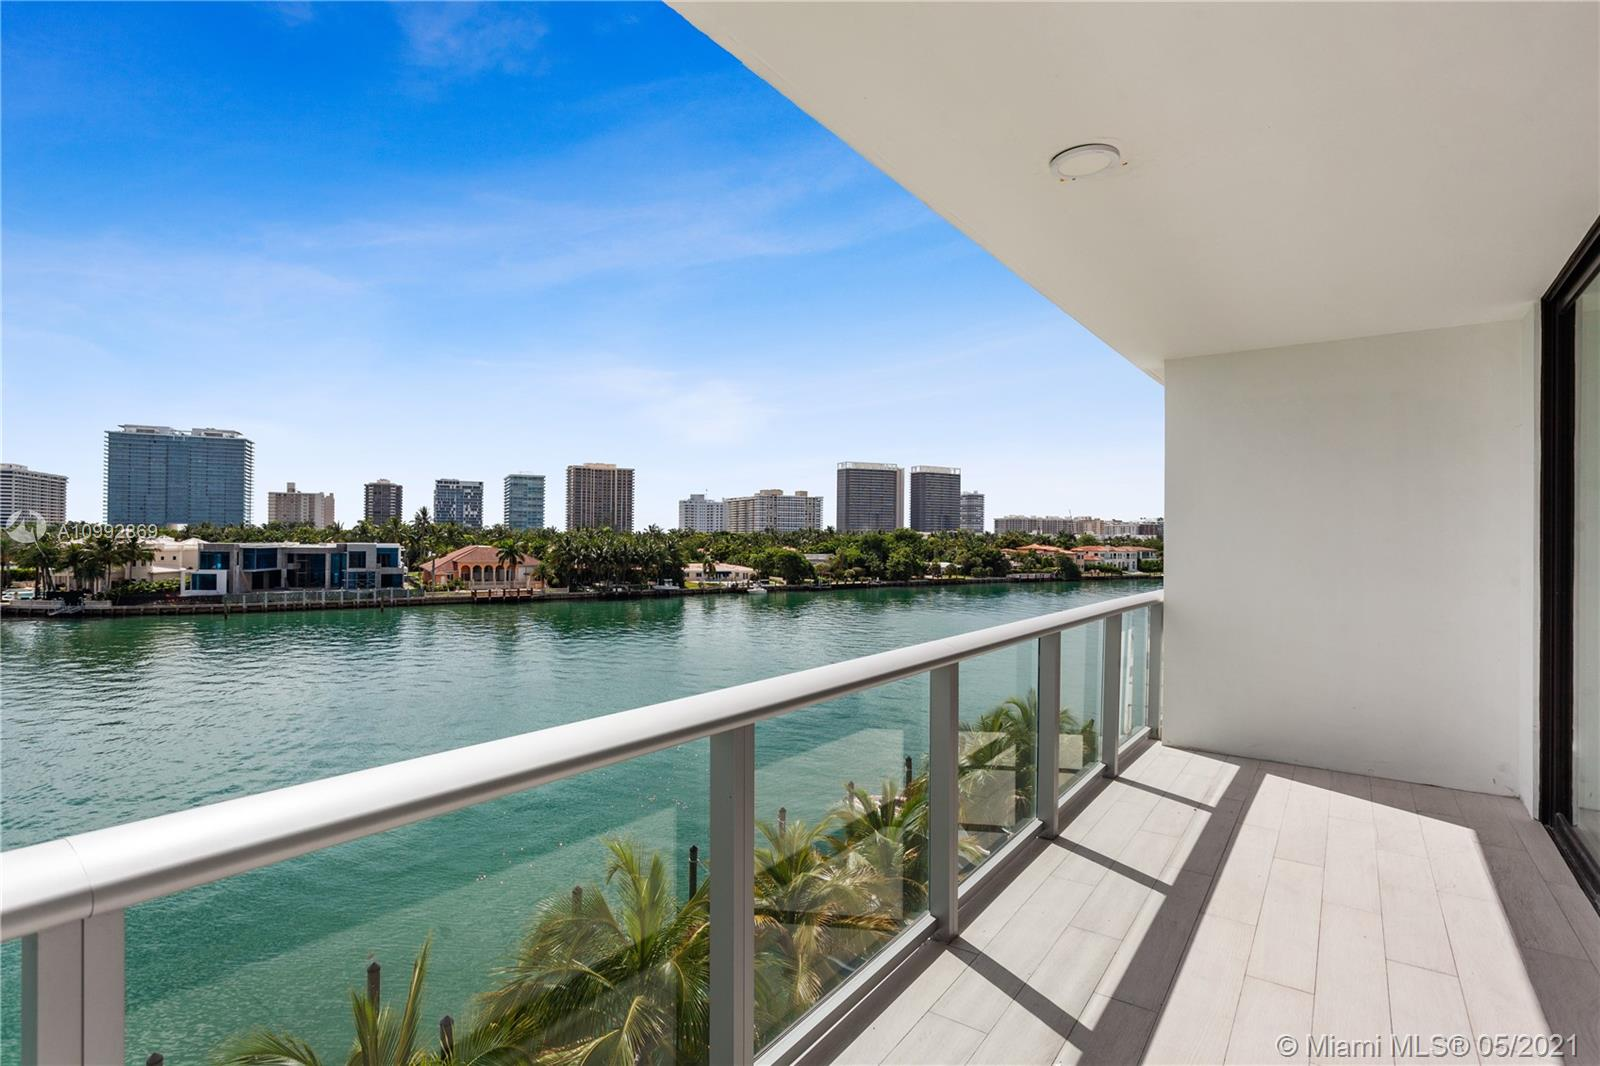 Immaculate 4 Bedroom +3 1/2 Bath + DEN with an incredible view to the bay and ocean for sale! Building designed by Corwil Architects and Steve G Interiors, located minutes away from the Bal Harbour shops and beaches. Walk or paddle board to the destination for fashion and luxury and A+ schools. 9ft High Ceiling, private elevator and flow through residences. Two assigned, covered self parking and a storage unit.